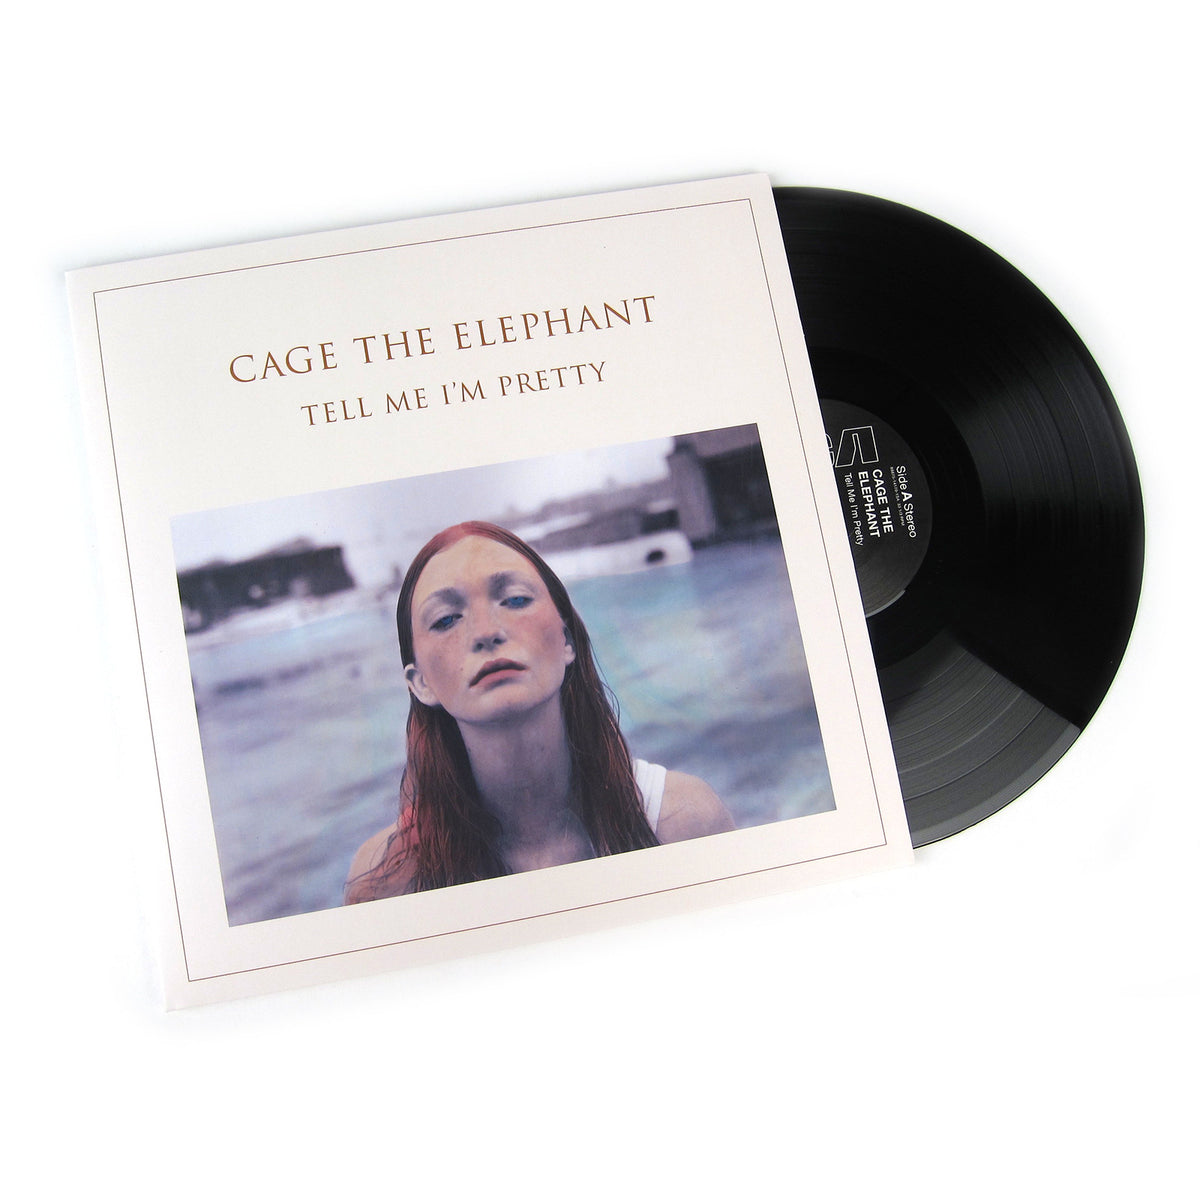 Cage The Elephant: Tell Me I'm Pretty (180g) Vinyl LP